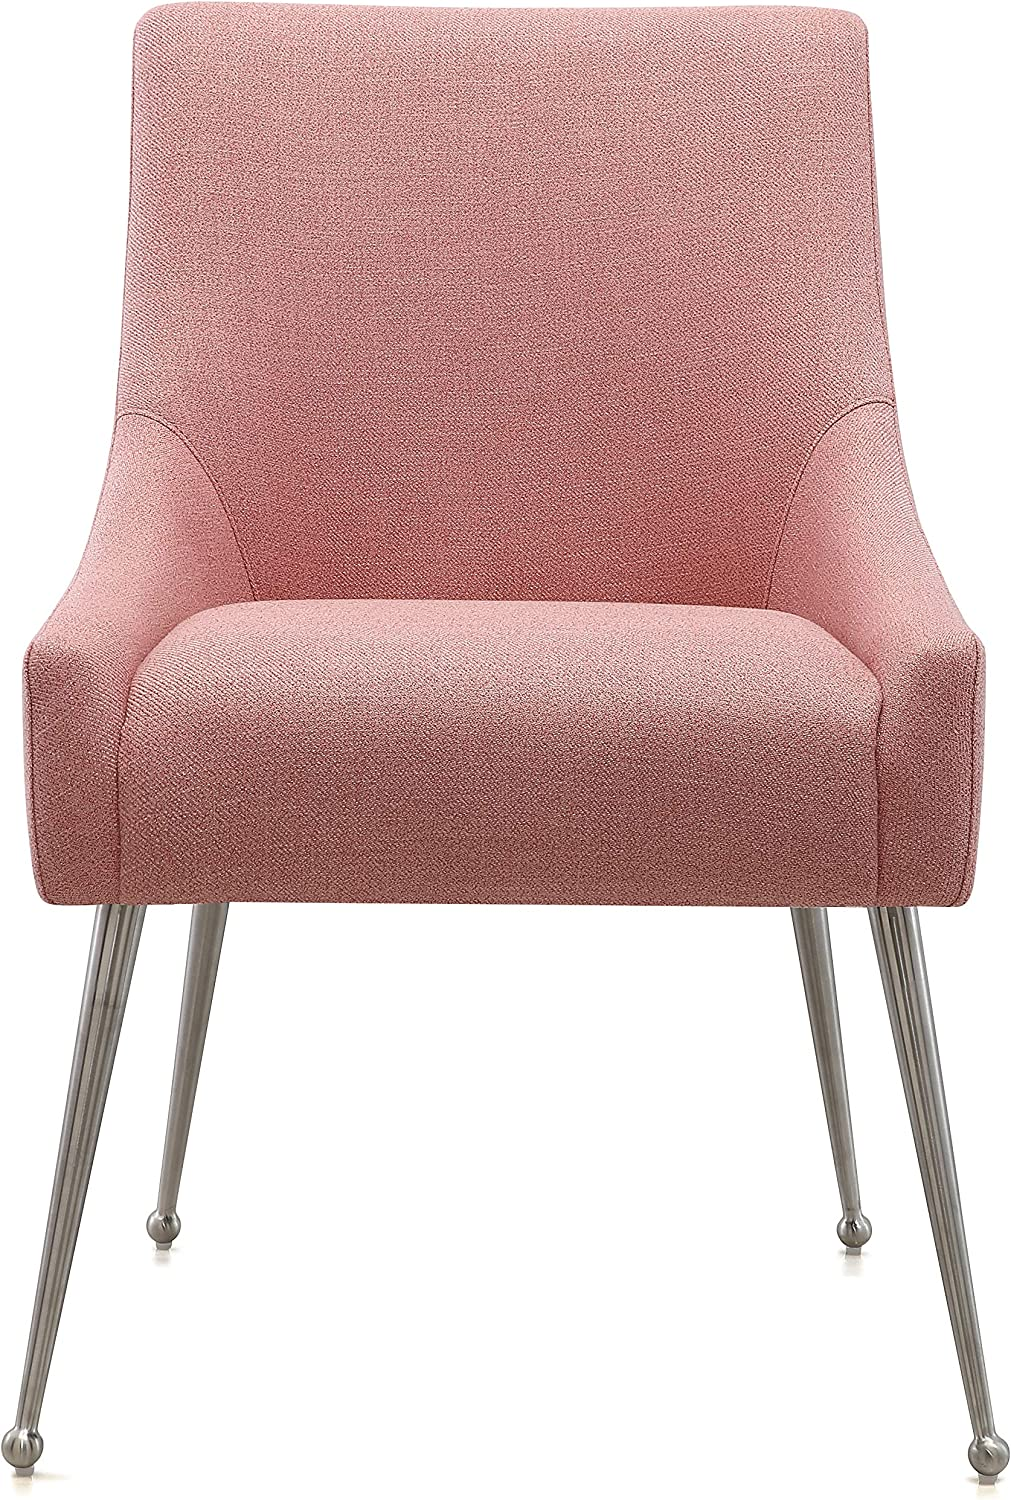 MEELANO Dining Chair, Pink